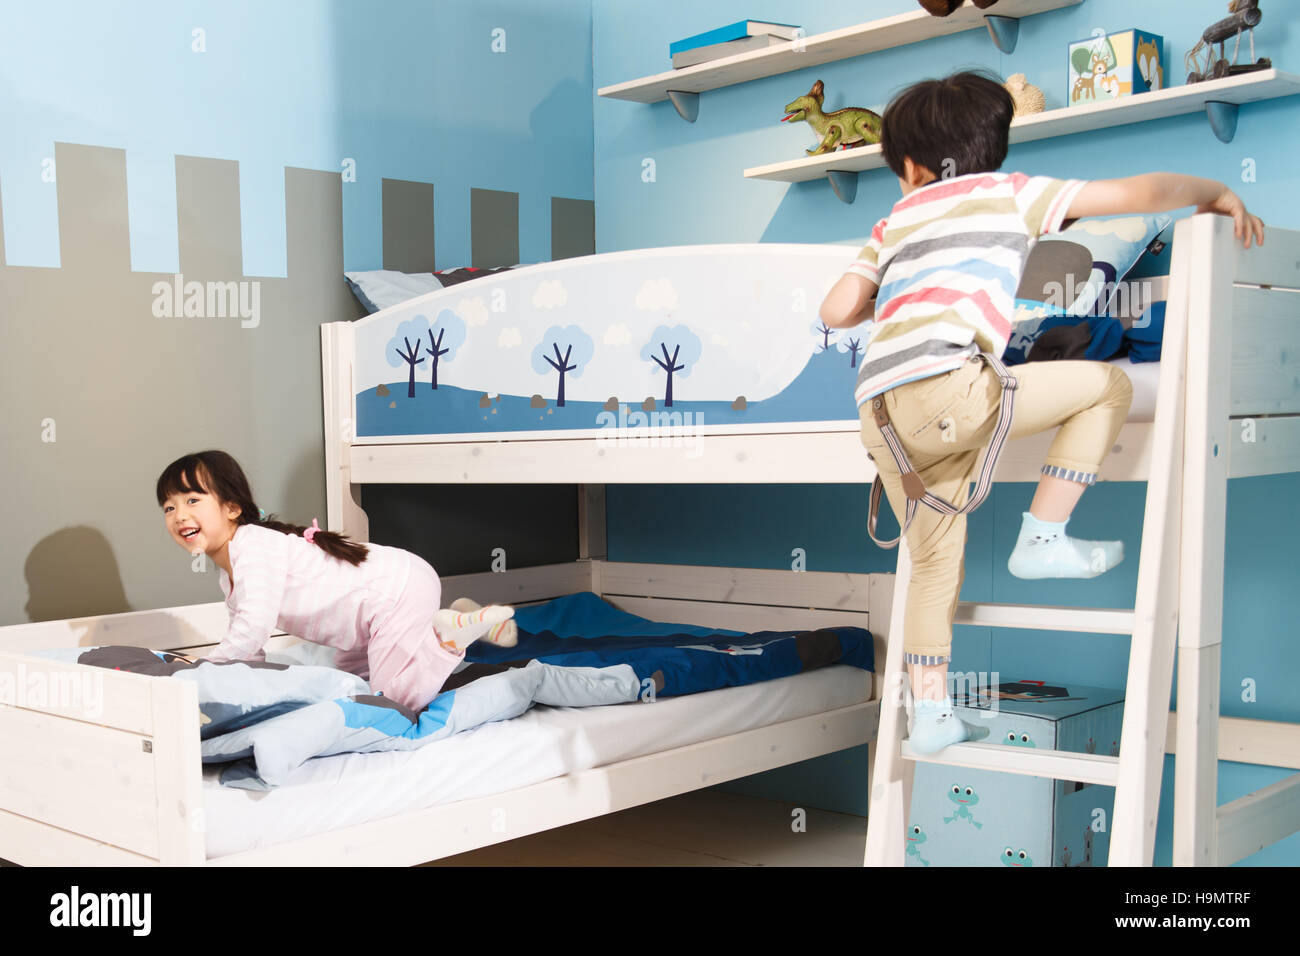 Two children play in a bunk bed. - Stock Image